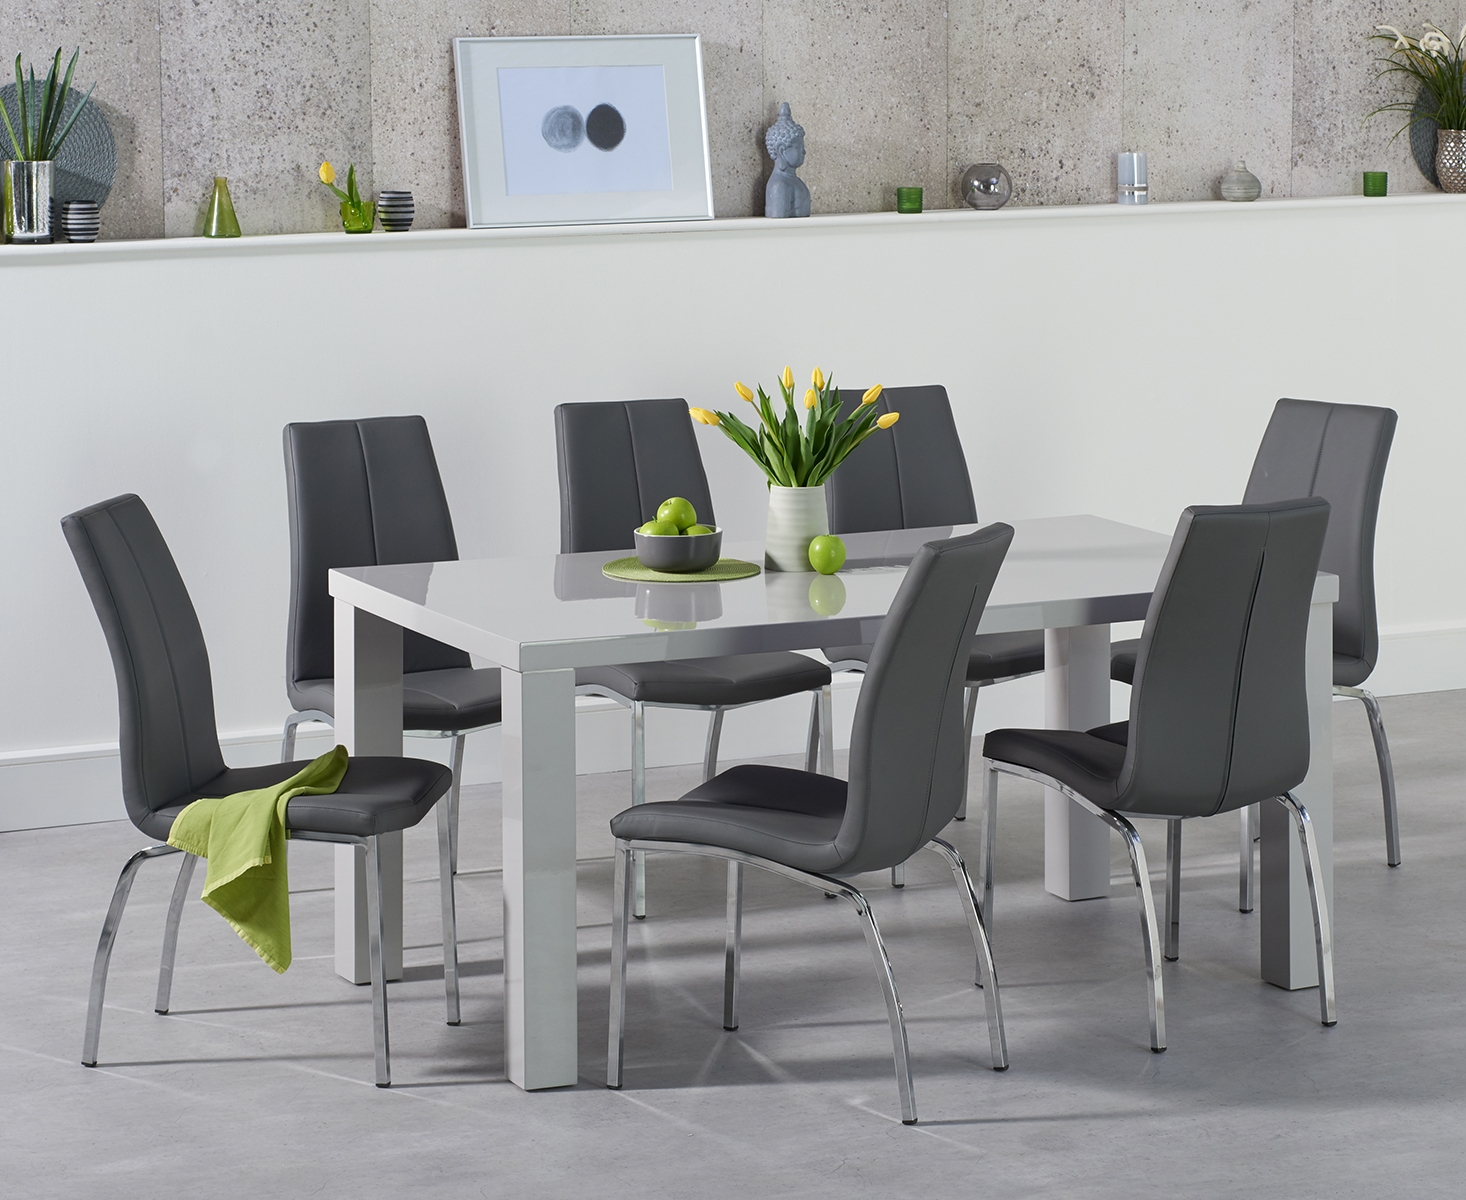 An image of Atlanta 160cm Light Grey Gloss Dining Table with Cavello Chairs